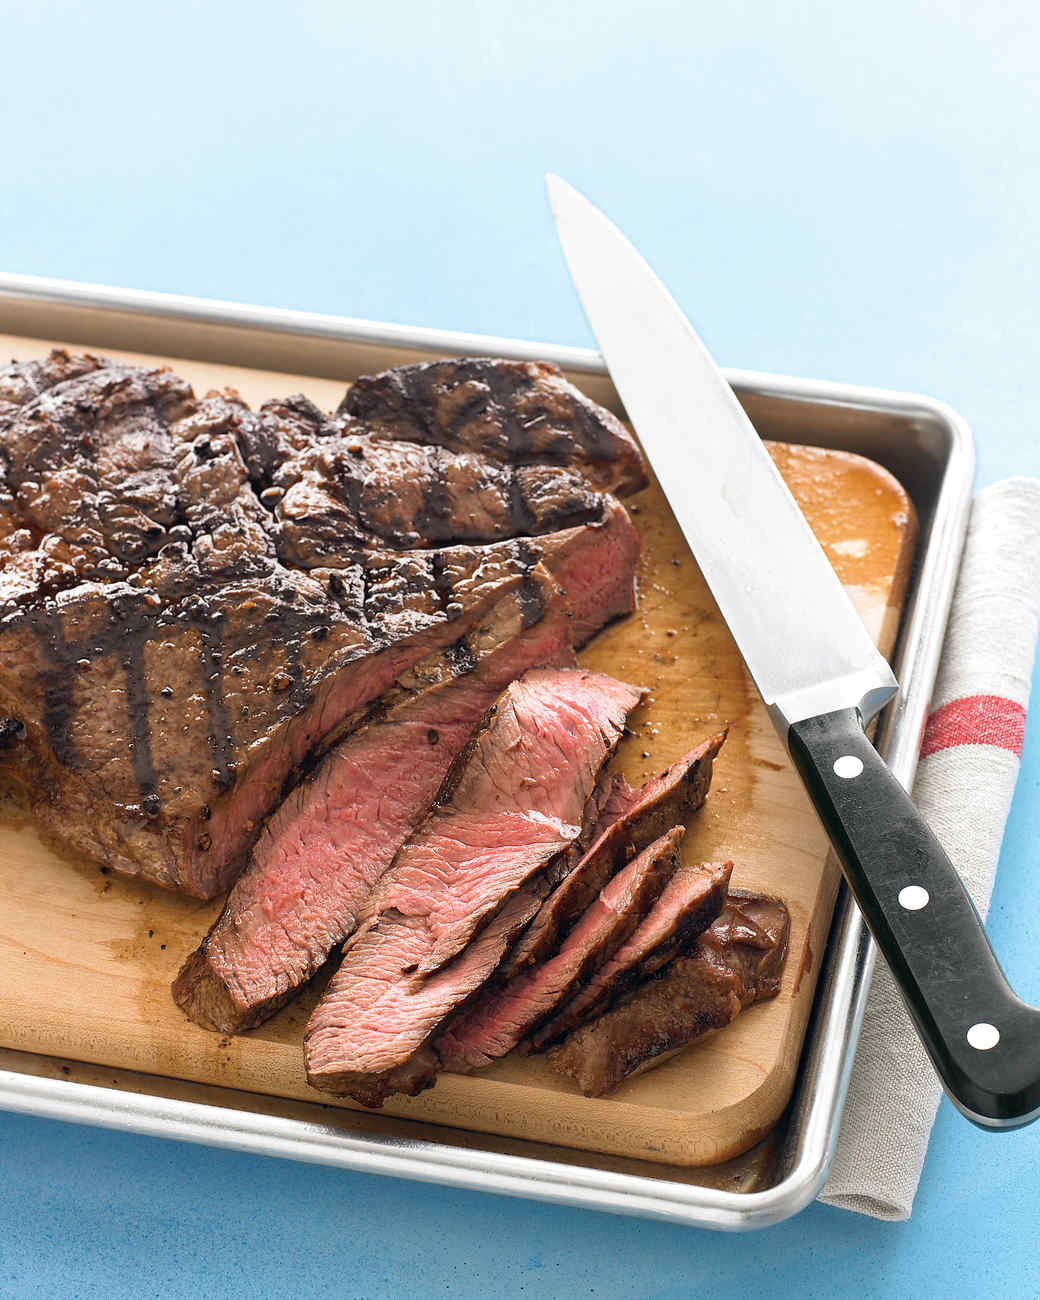 med103901_0708_sliced_beef.jpg